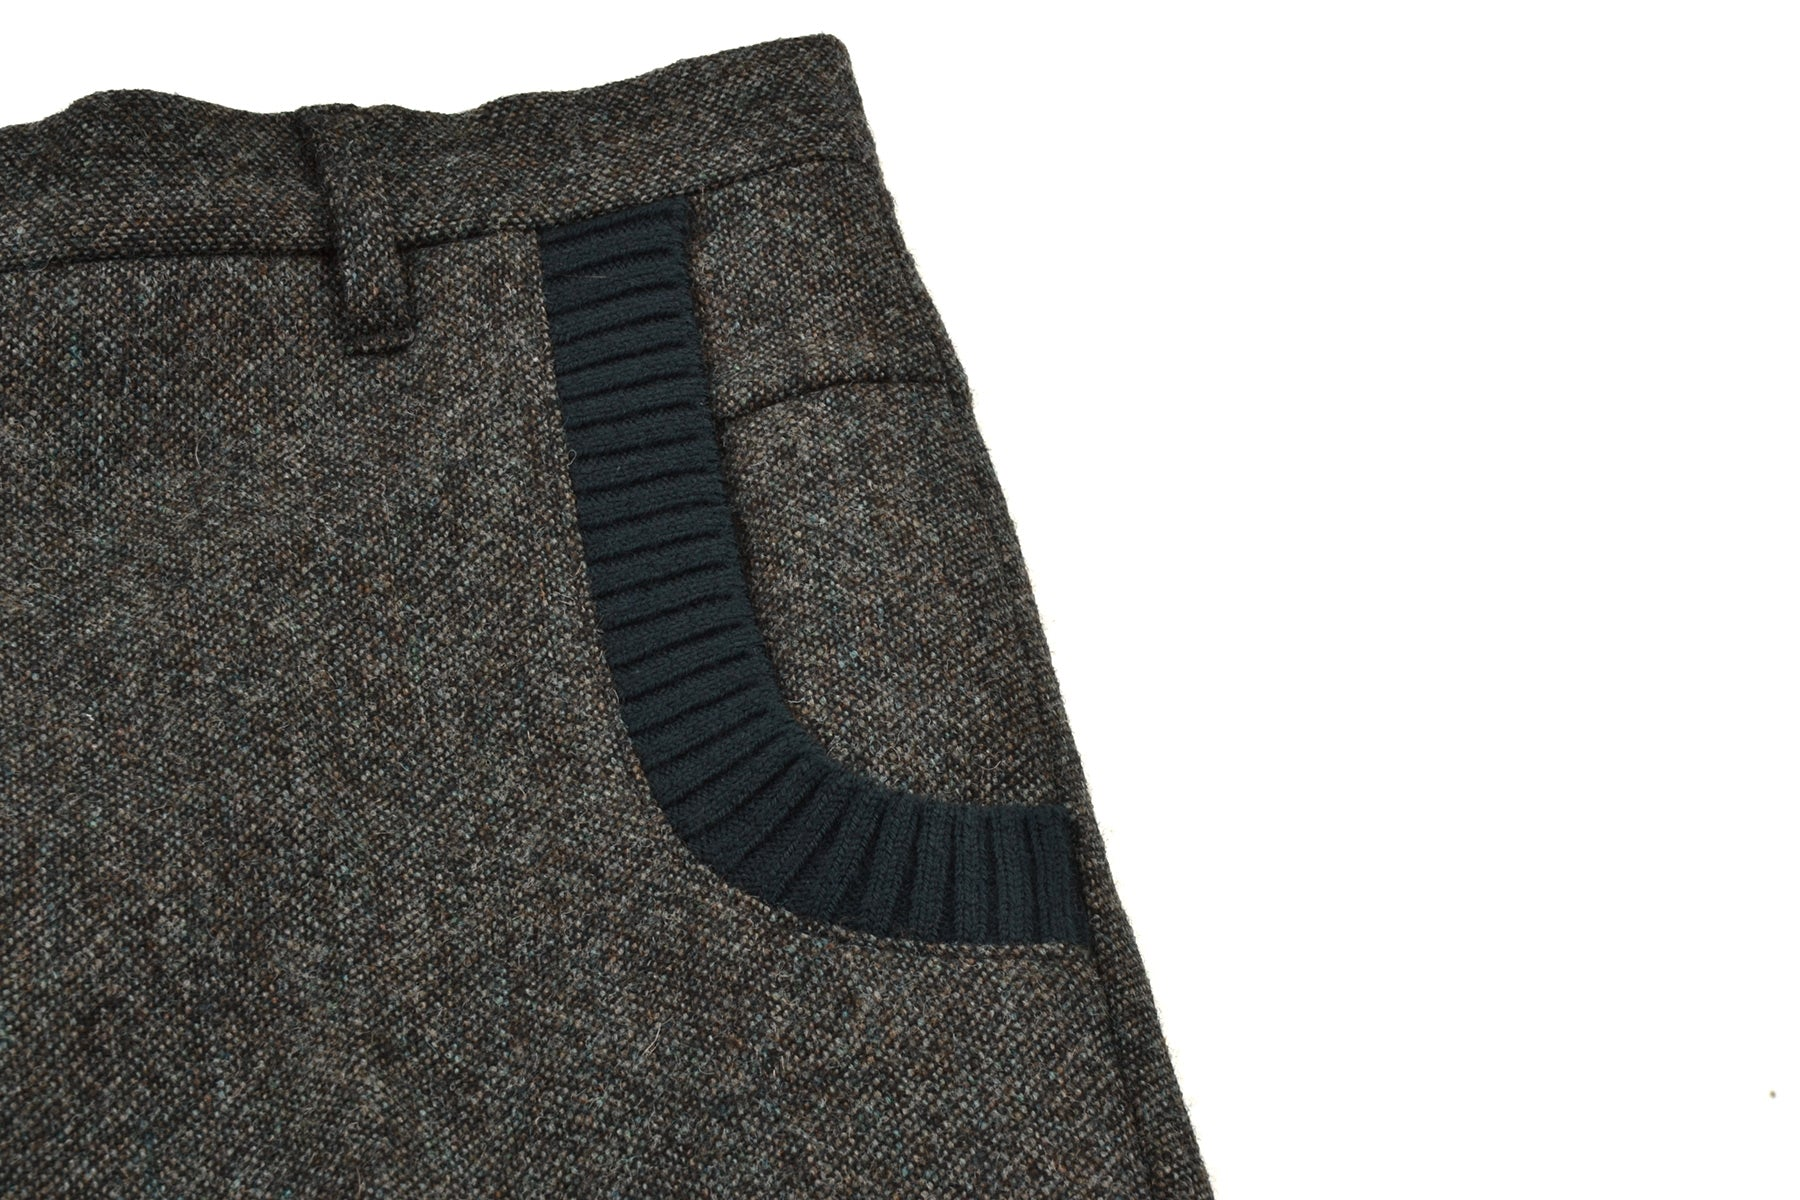 2007 A/W TROUSERS IN TWEED WOOL WITH KNIT INSERTS